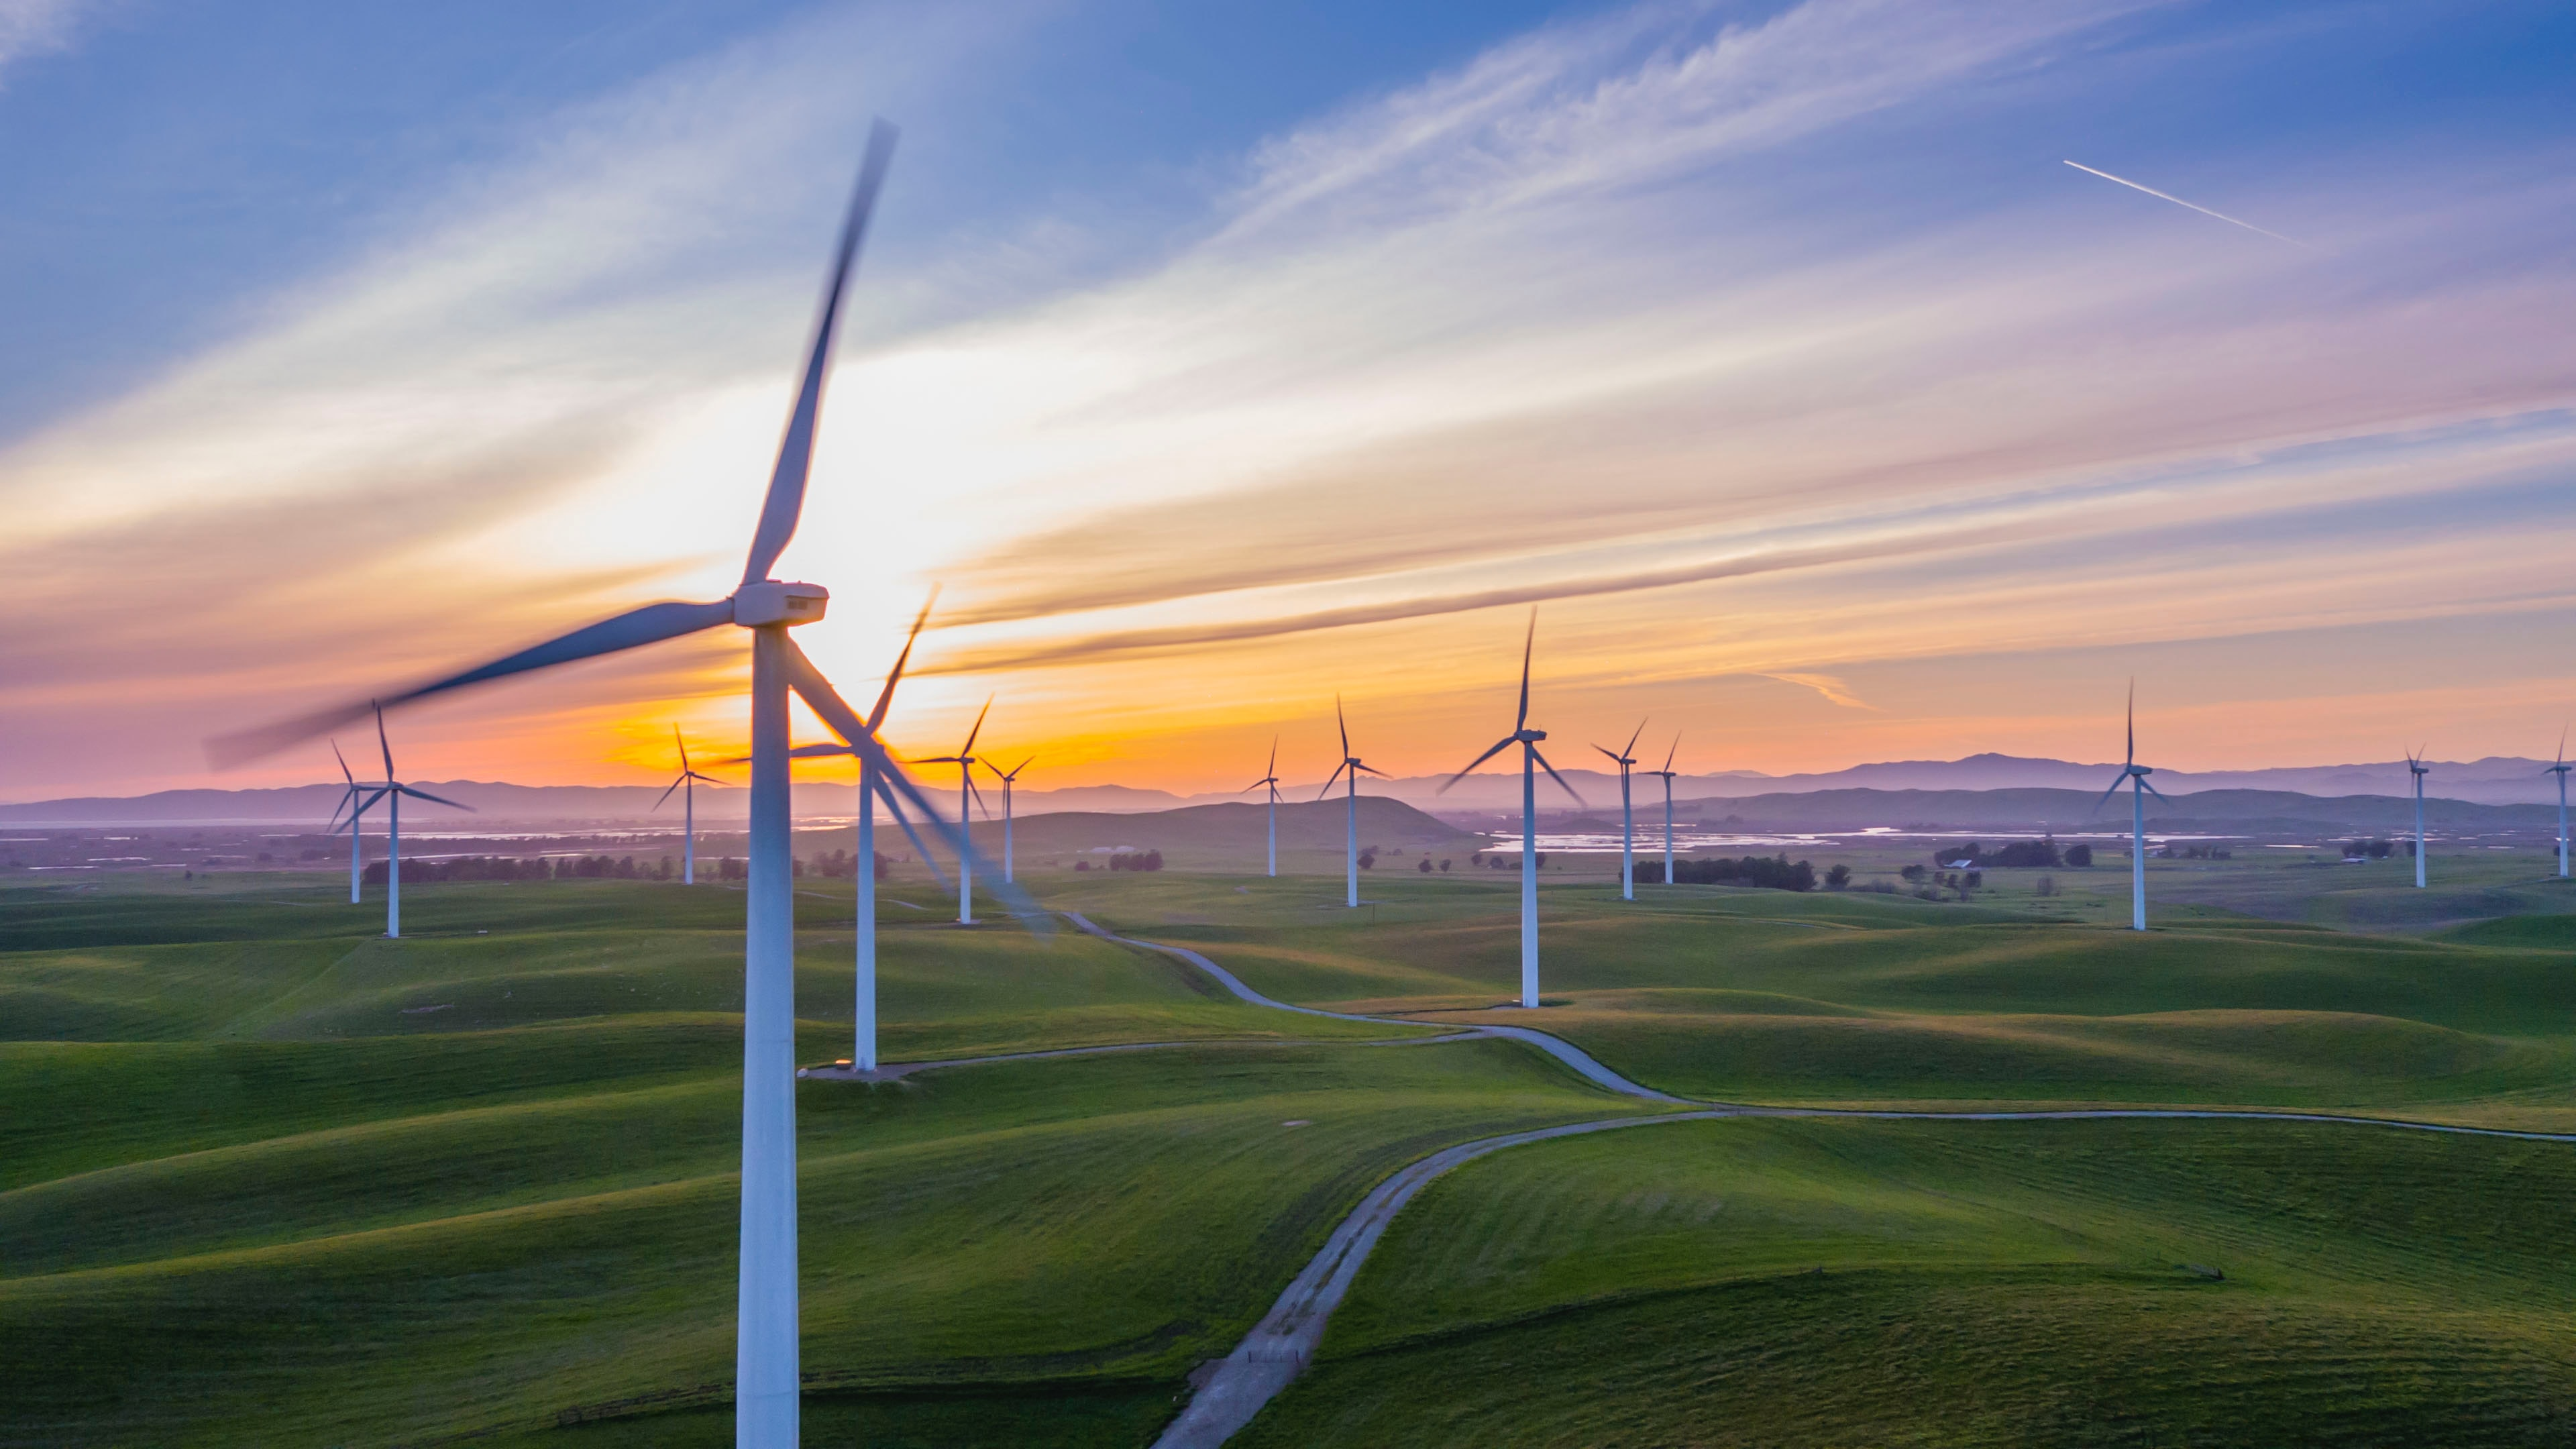 Wind turbines in a green field at sunset